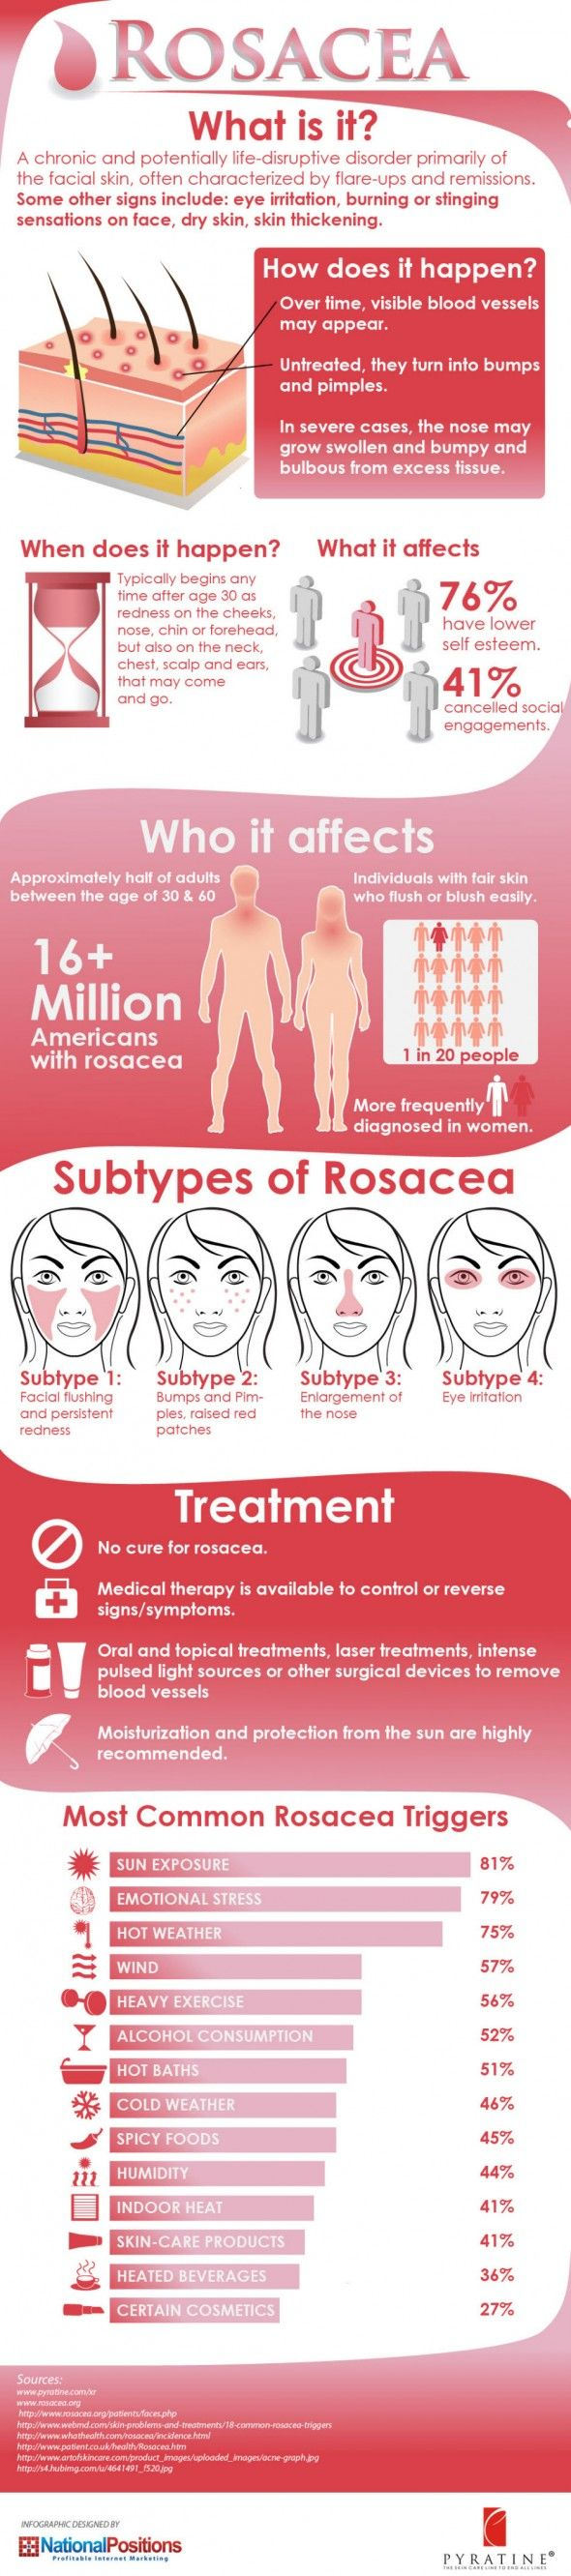 Infographic: What Causes Rosacea?  Inbox for more detail.  http://altasmith.arbonneinternational.co.uk